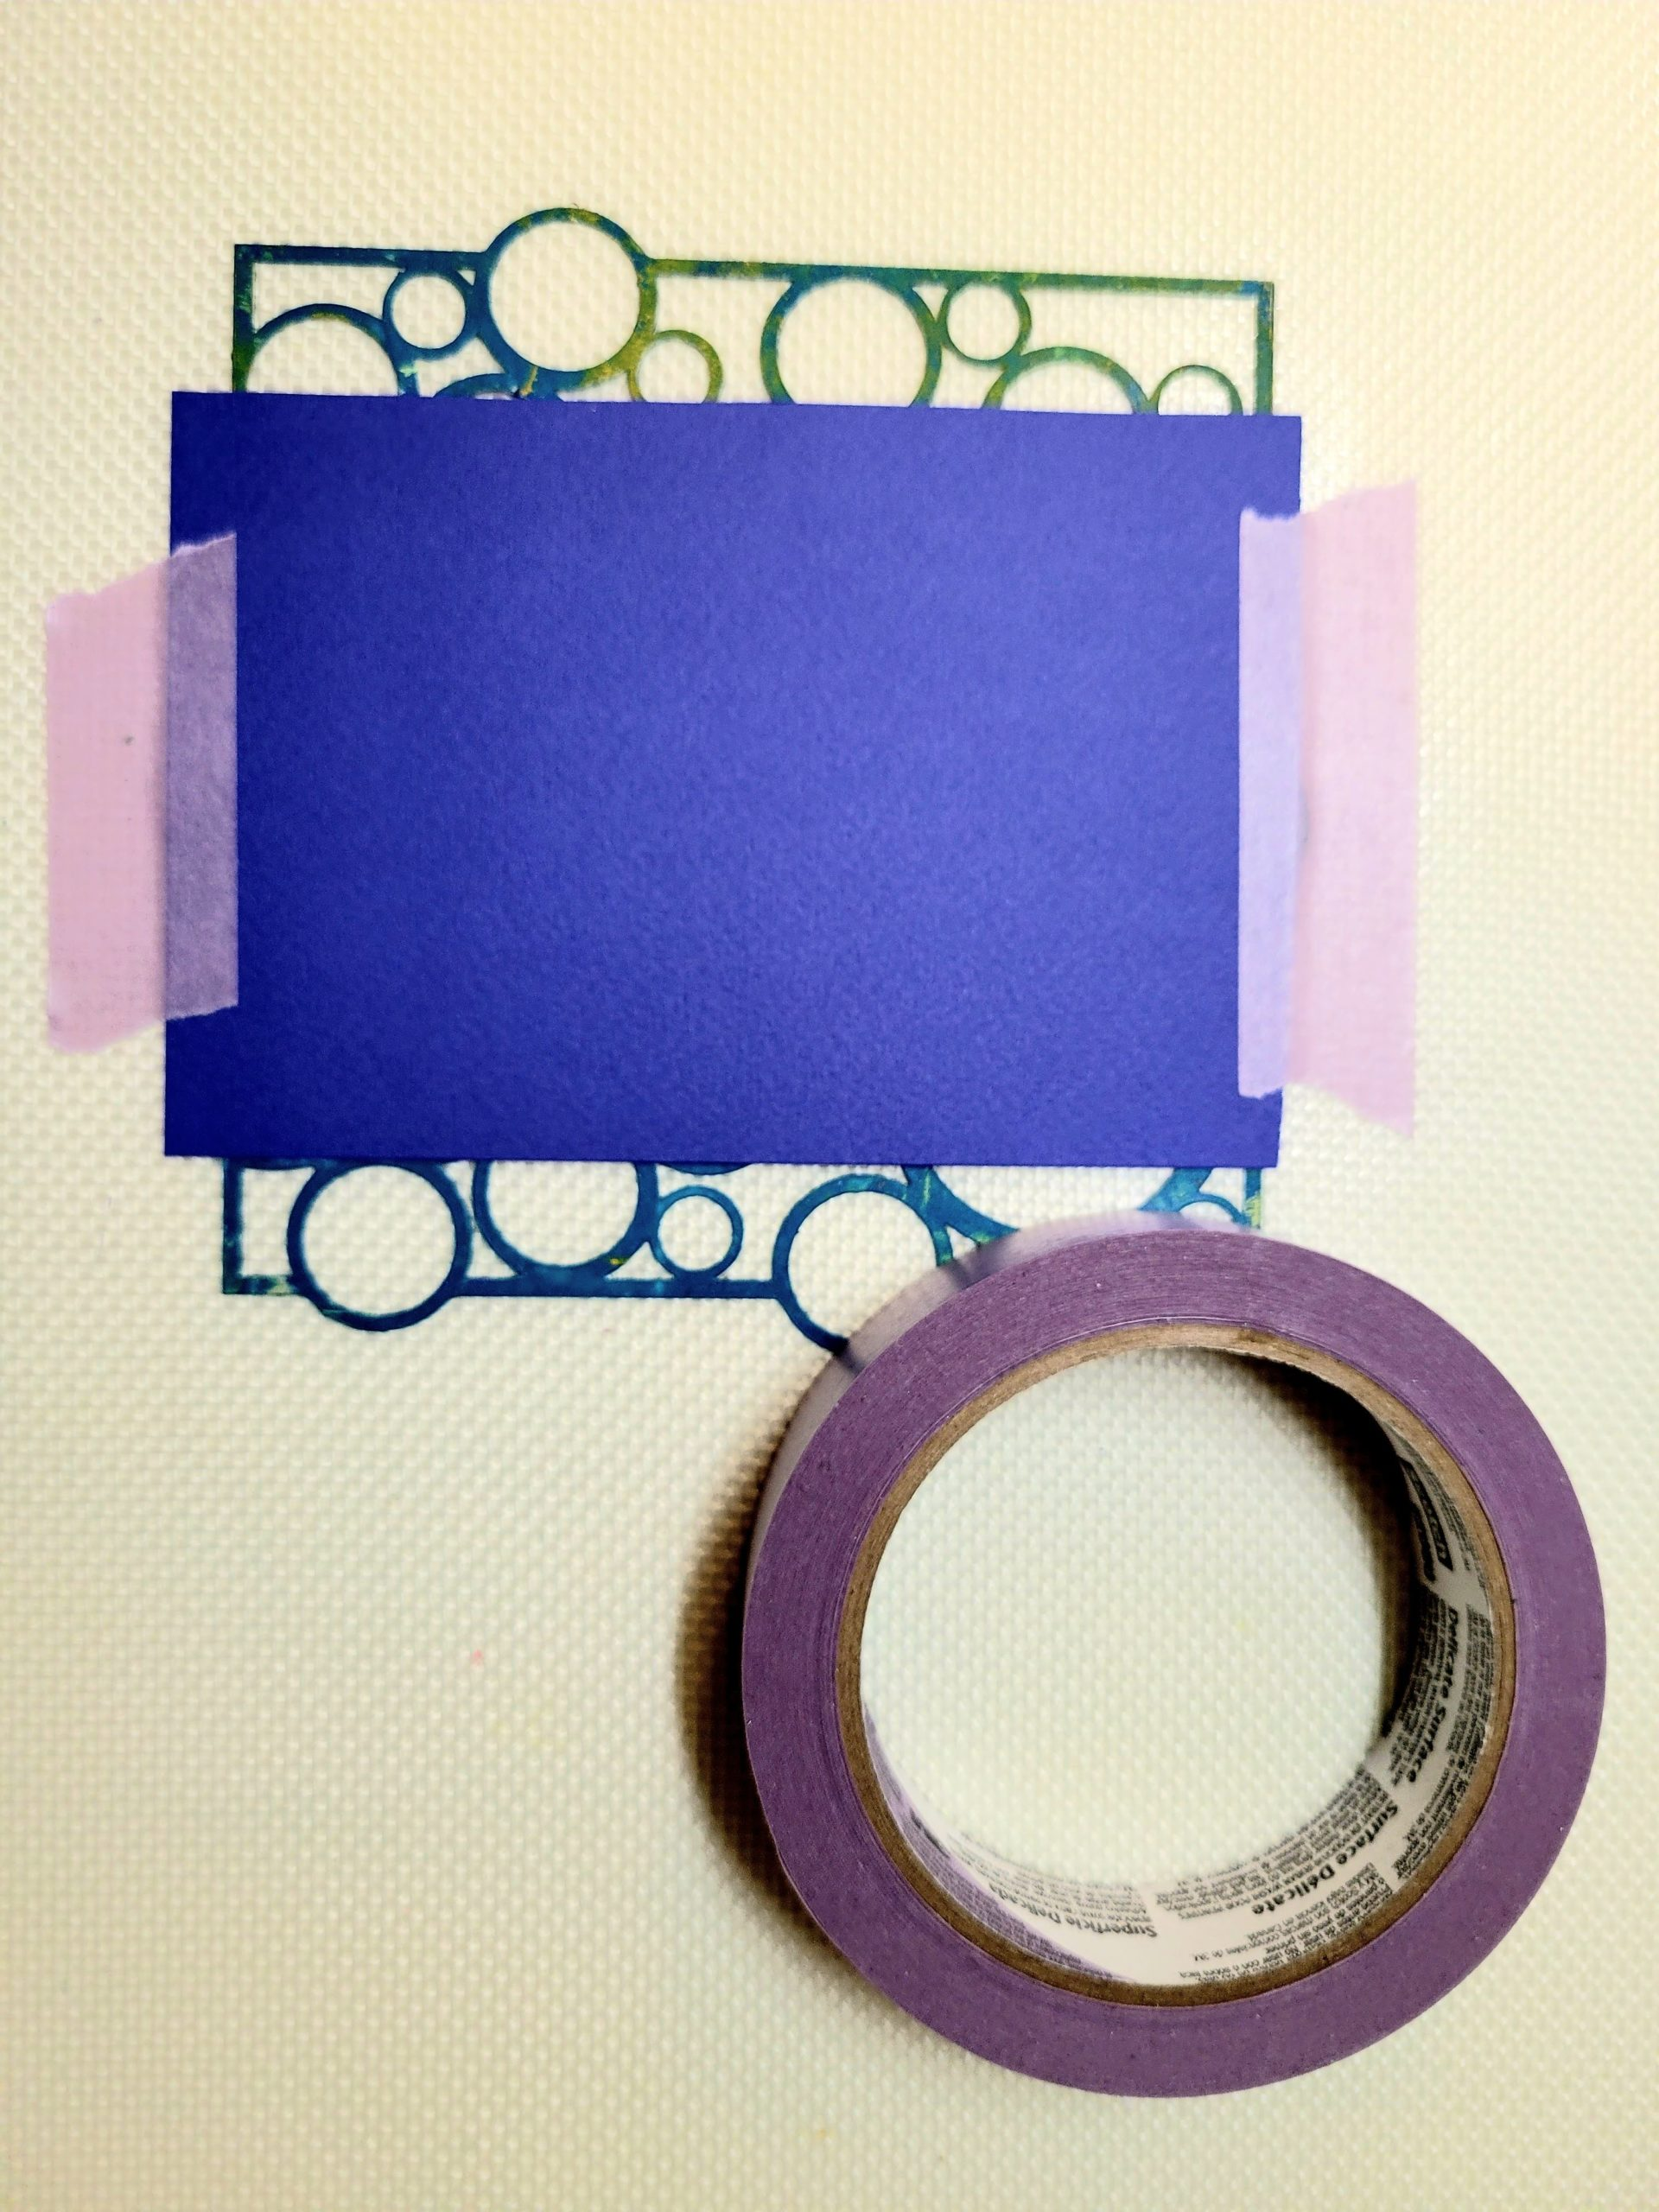 Image showing the paper taped down over the stencil using 3M Delicate Surface tape.